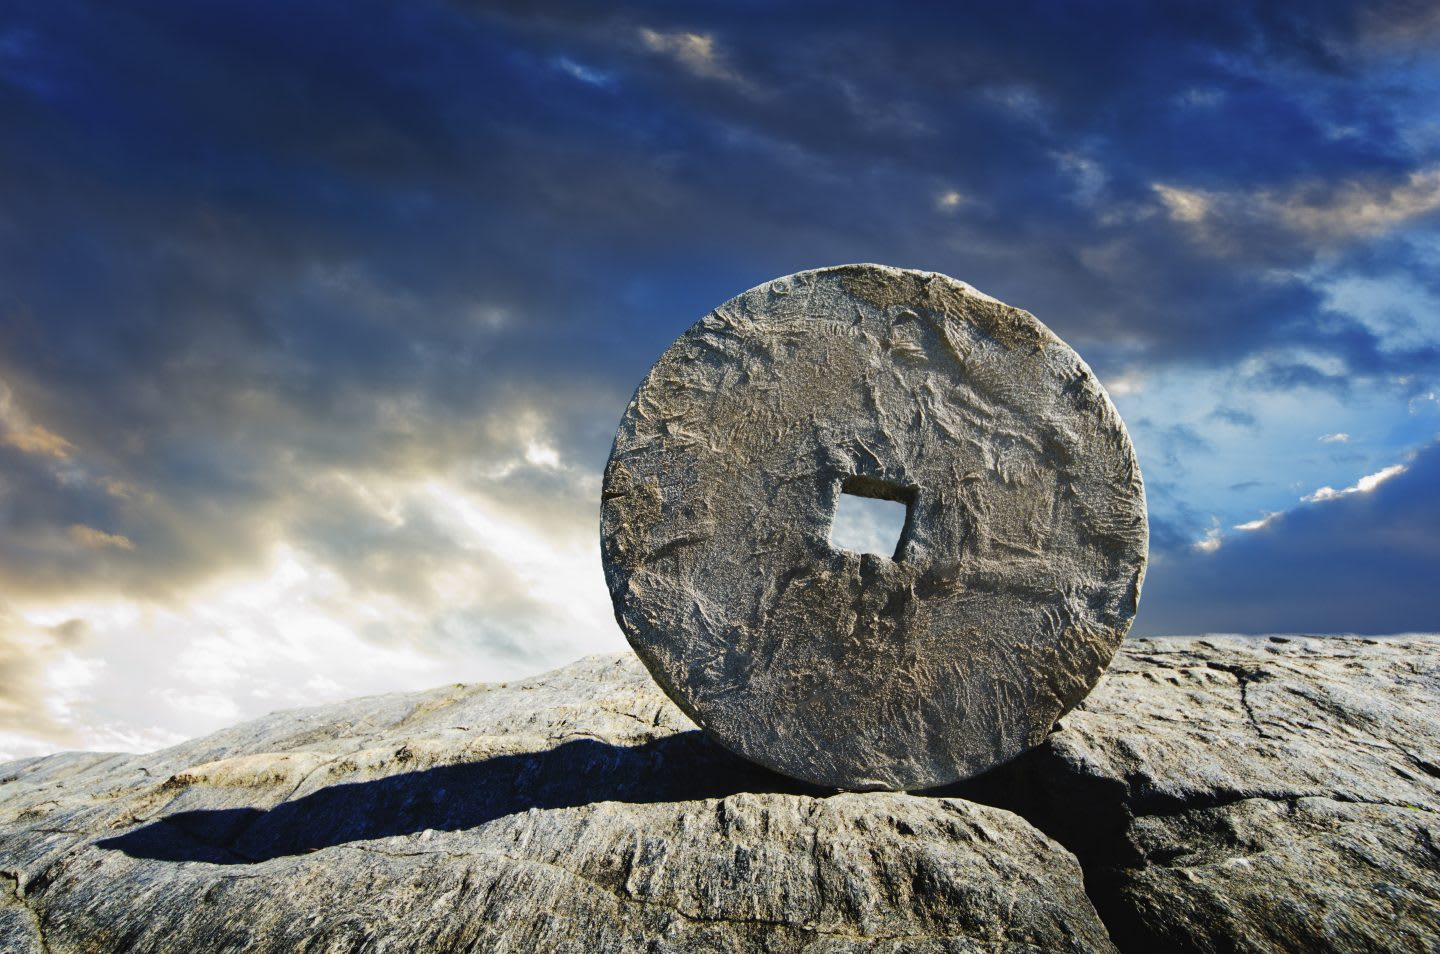 Ancient stone circle artefact against a blue sky background, USA, New York City, ancient, stone, circle